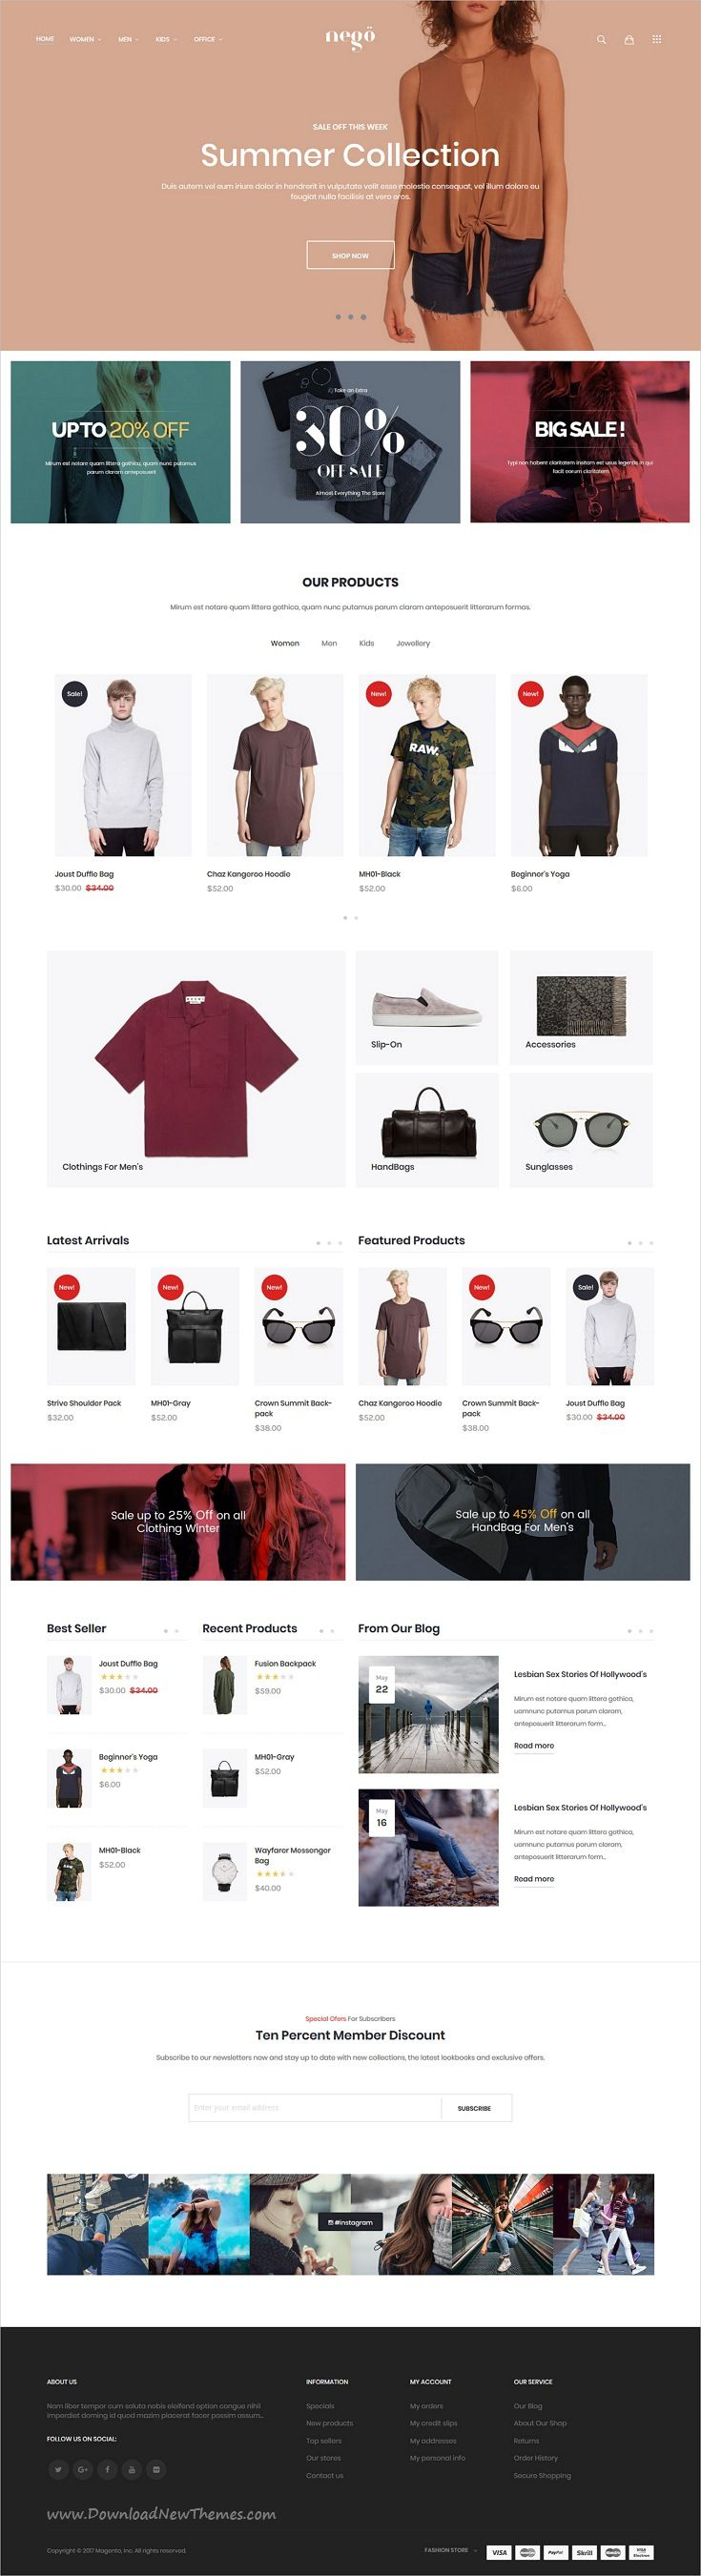 Nego is clean, minimalist and modern design responsive #Magento theme for stunning #fashion store #eCommerce website with 6 niche homepage layouts download now..